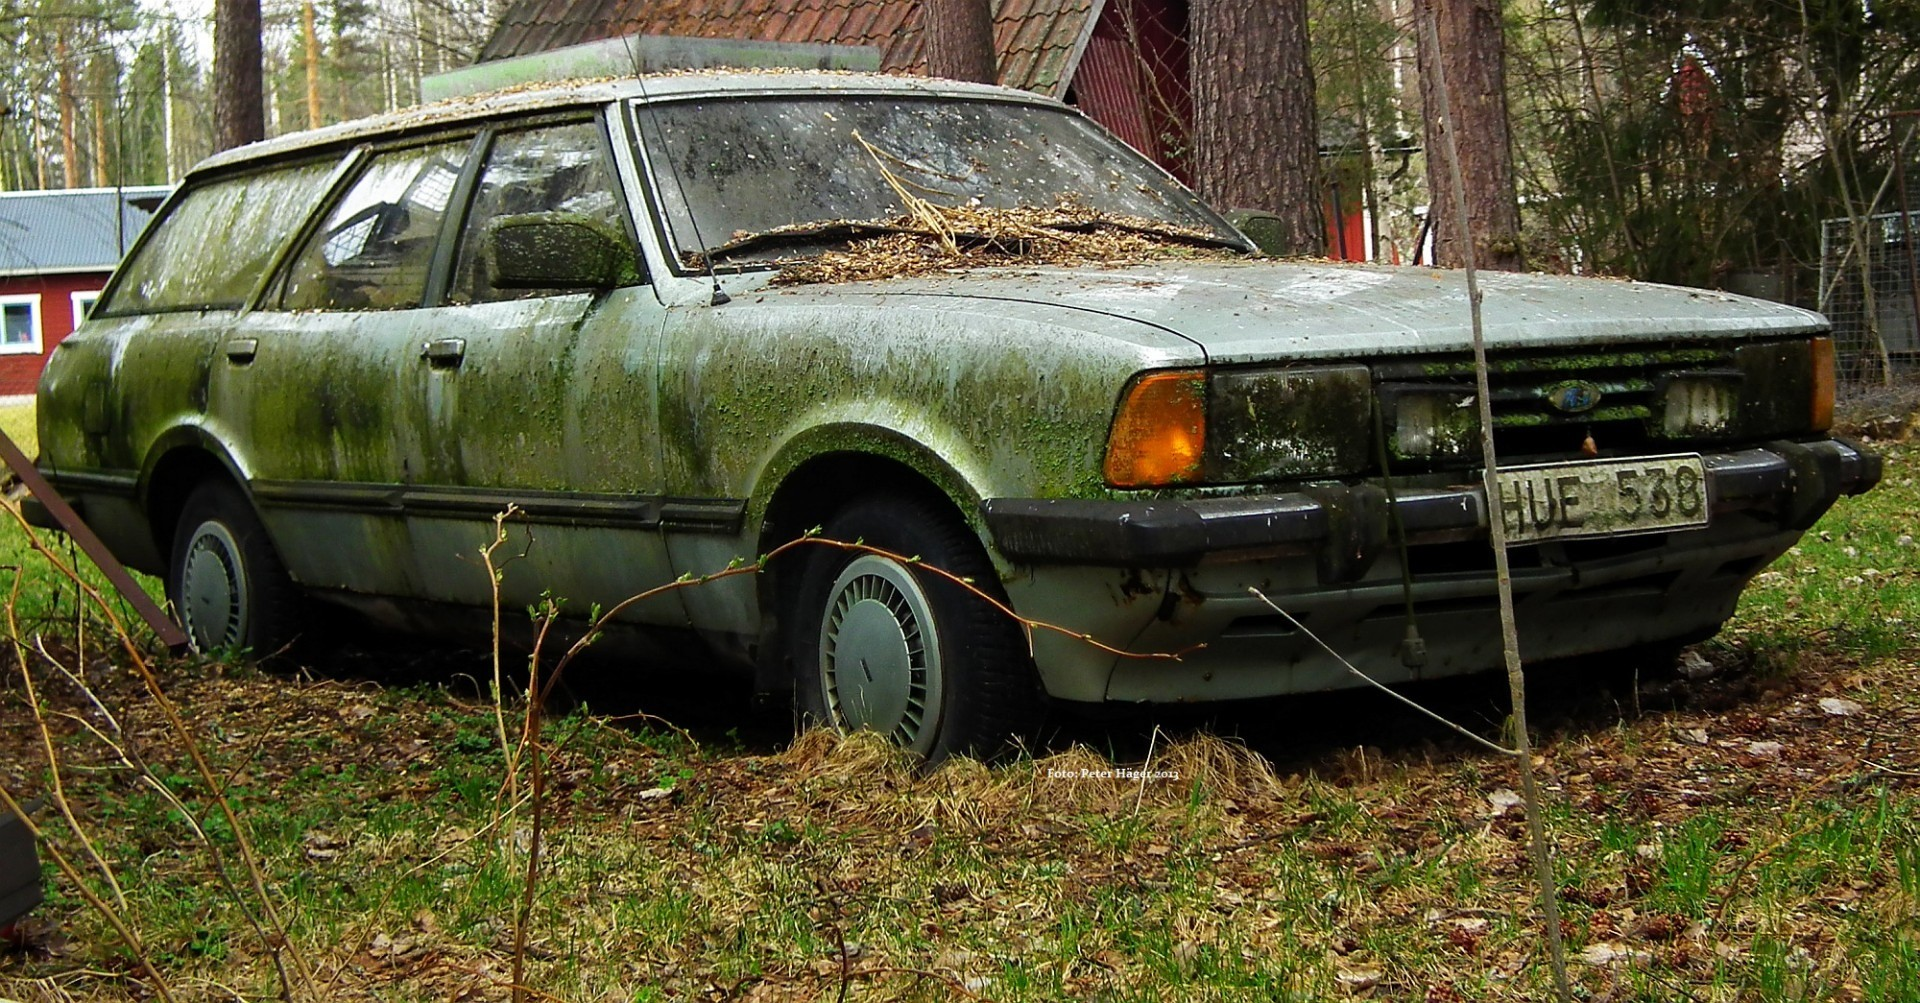 Why Junk Cars Miami? 17 Important Facts about Automotive Recycling